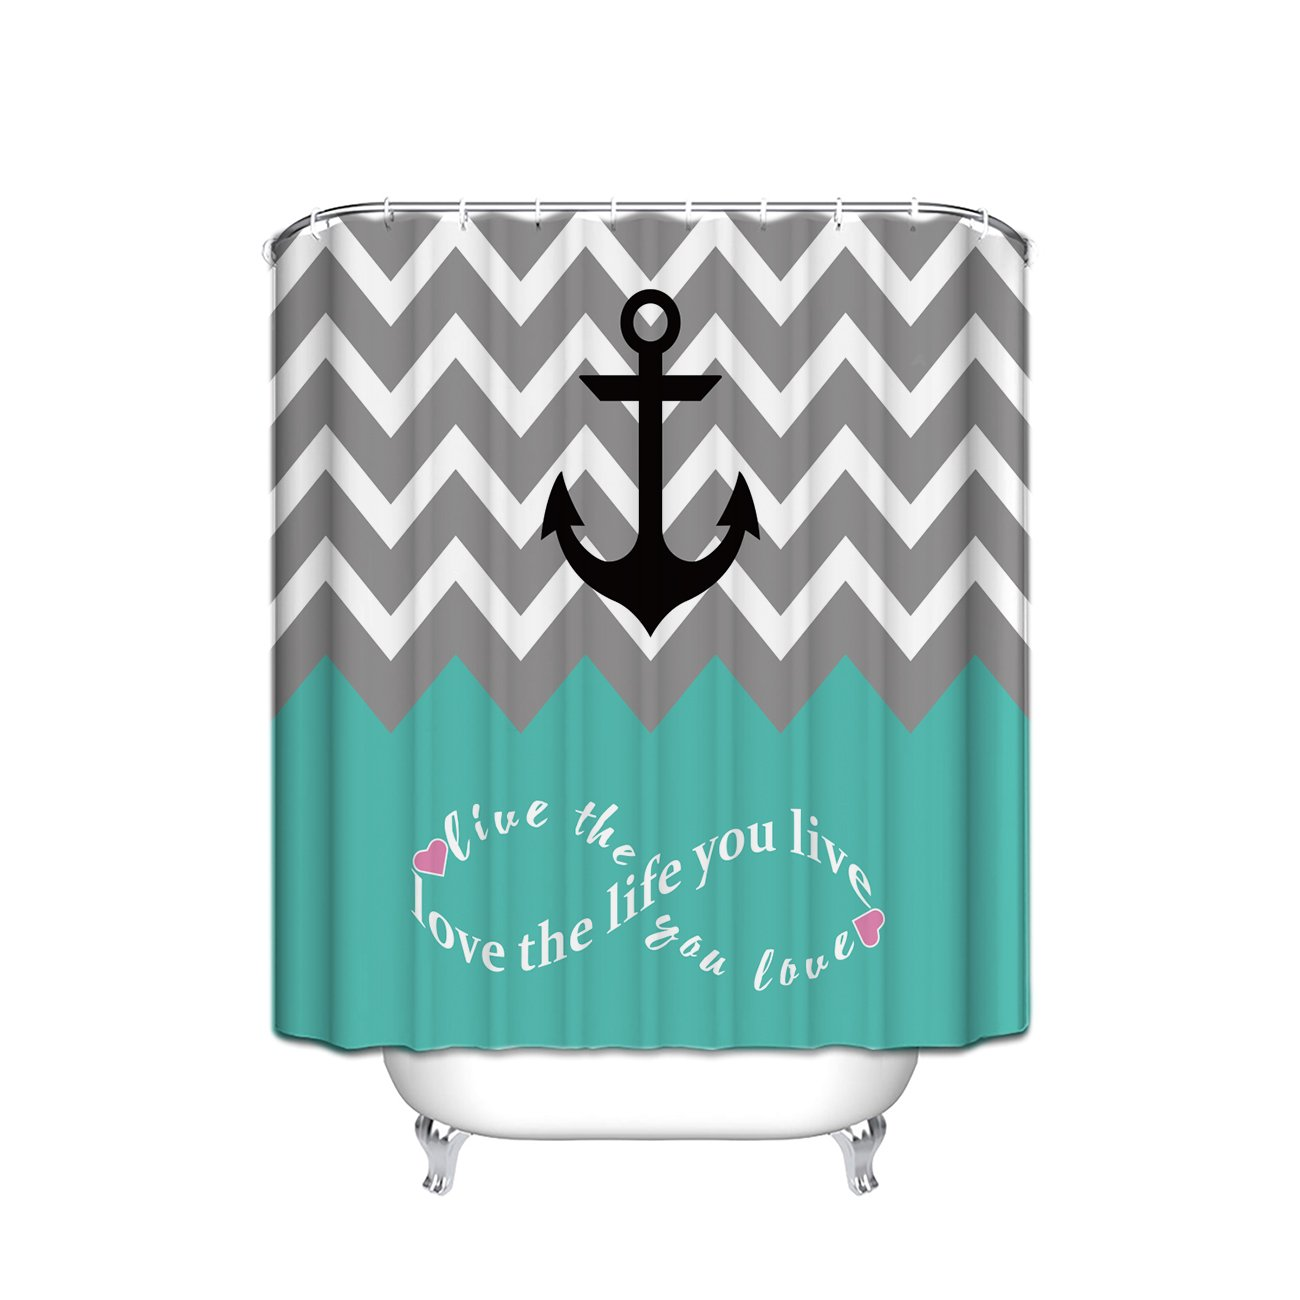 Infinity Live The Life You Love,Love The Life You Live Chevron Pattern with Nautical Anchor Turquoise Grey White Waterproof Bathroom Fabric Shower Curtain,Bathroom Decor Small Size 36 x 72 Chic D